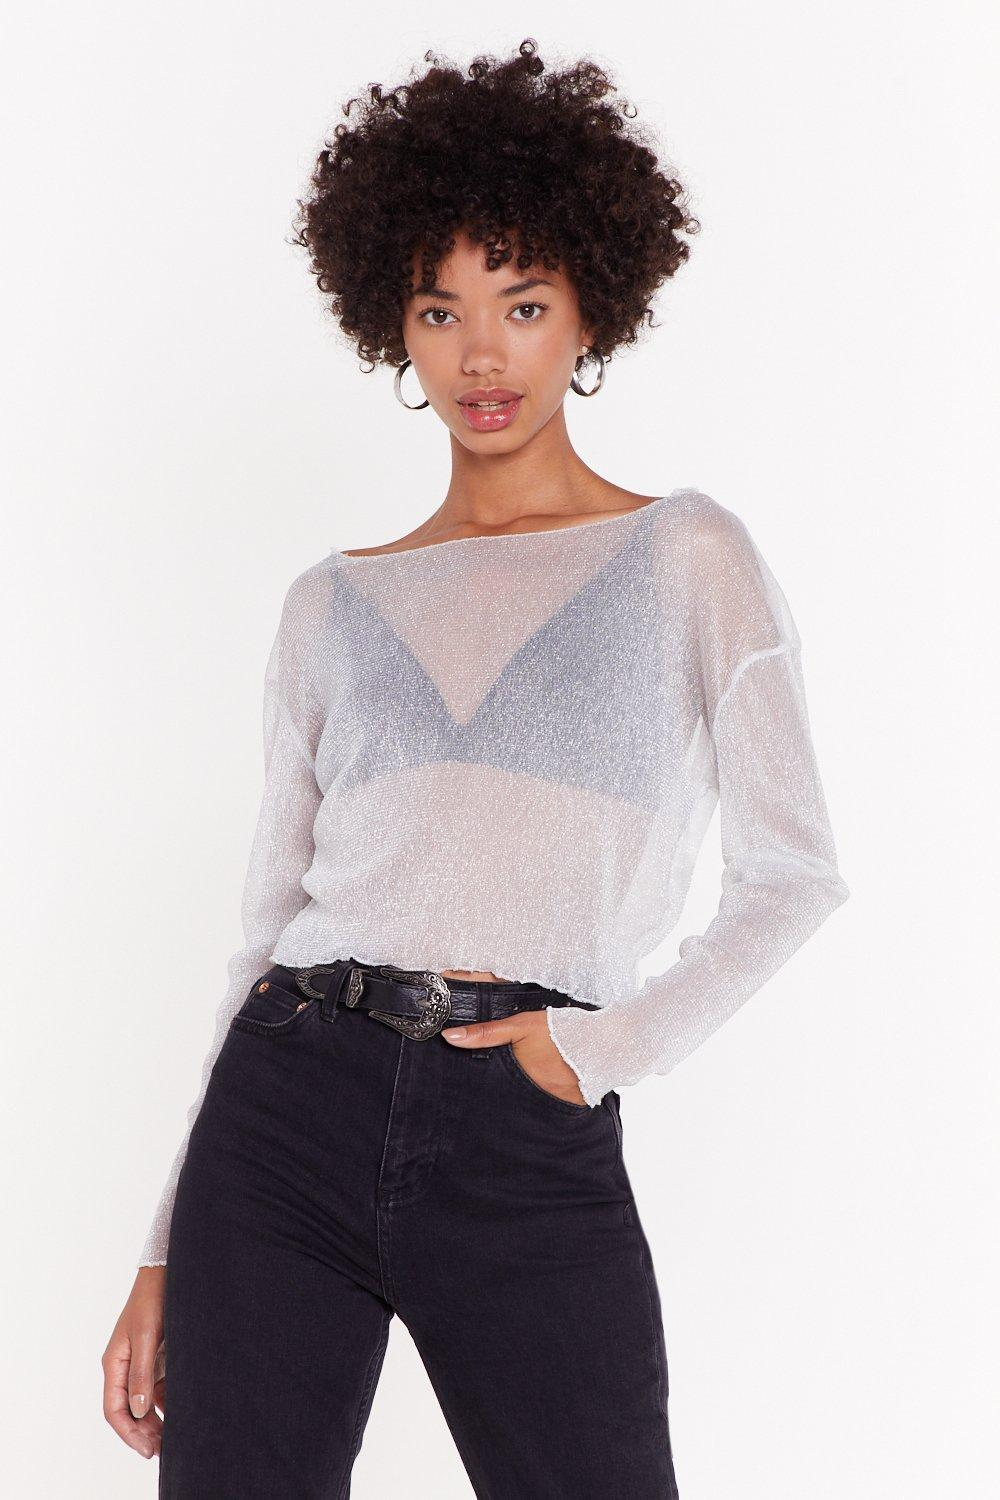 8300f5c3e8 Sleeve It All Behind Mesh Glitter Top | Shop Clothes at Nasty Gal!